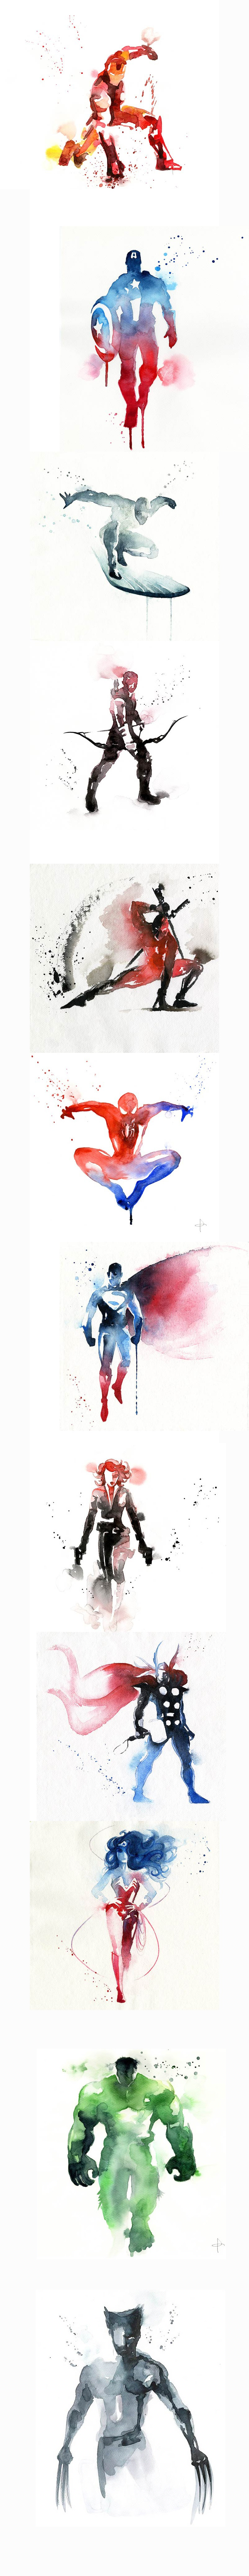 Cool Superheroes Art